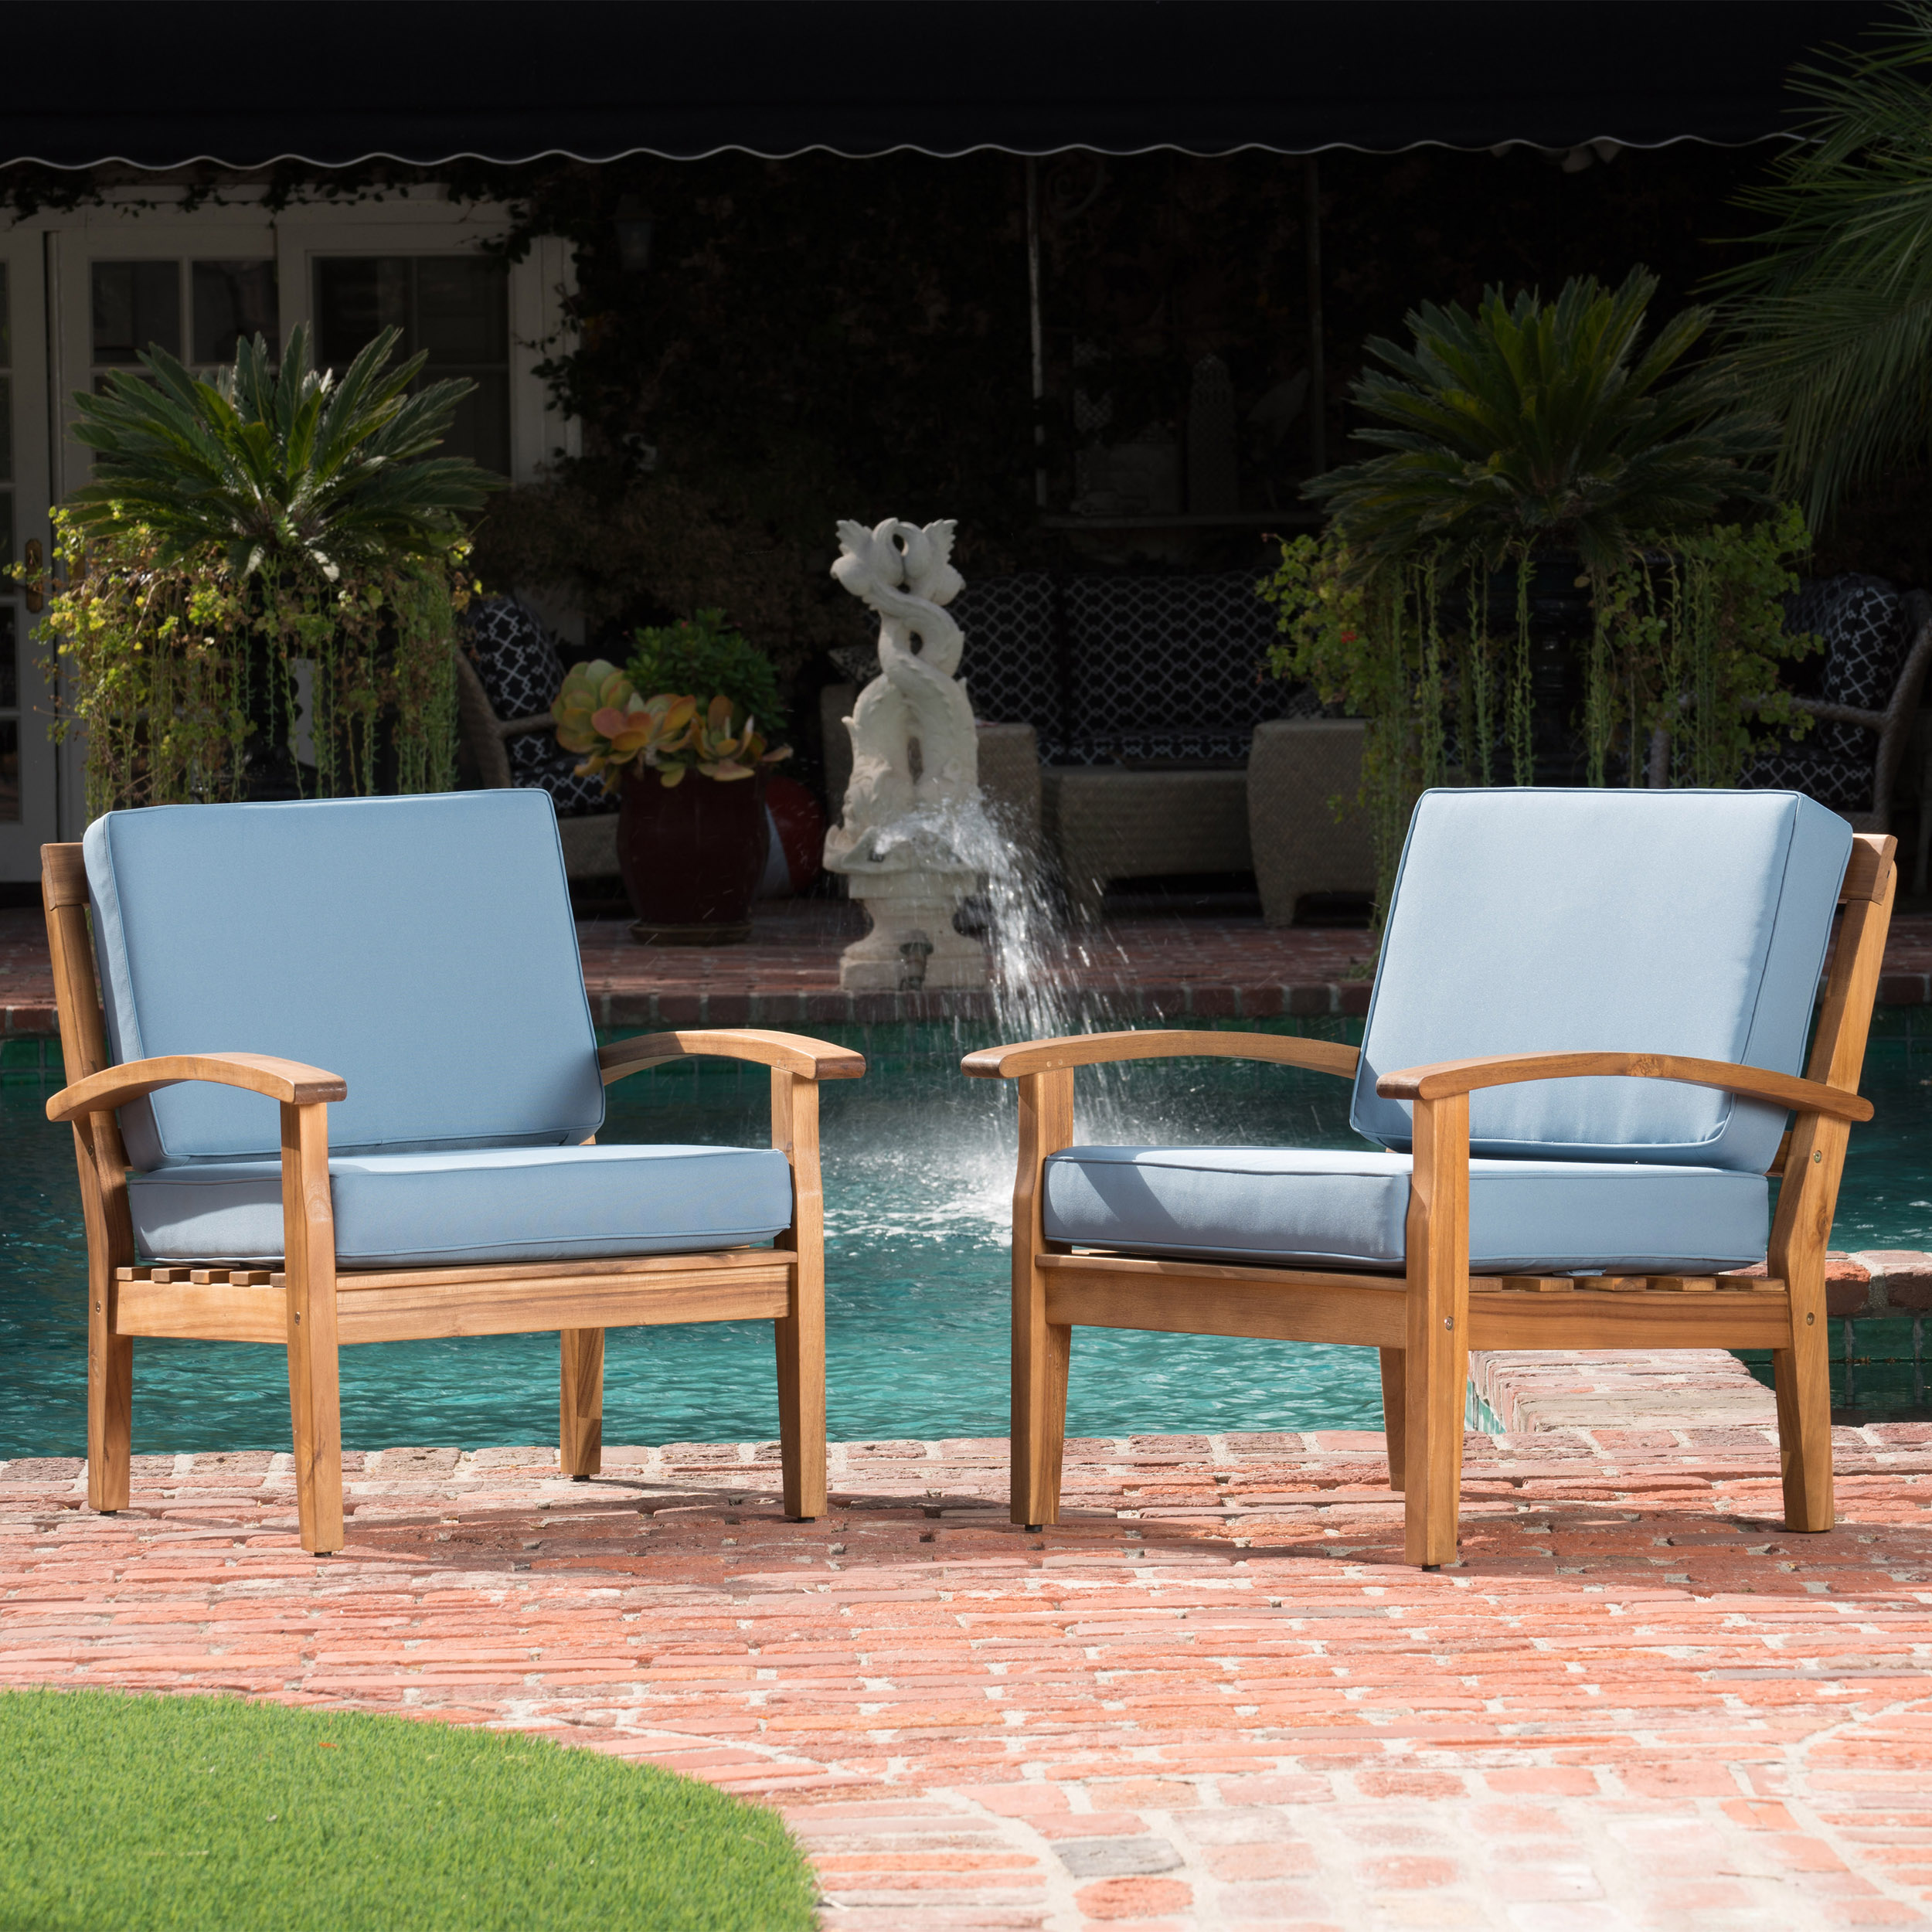 Aletta Outdoor Wooden Club Chairs with Cushions, Set of 2, Teak Finish, Blue